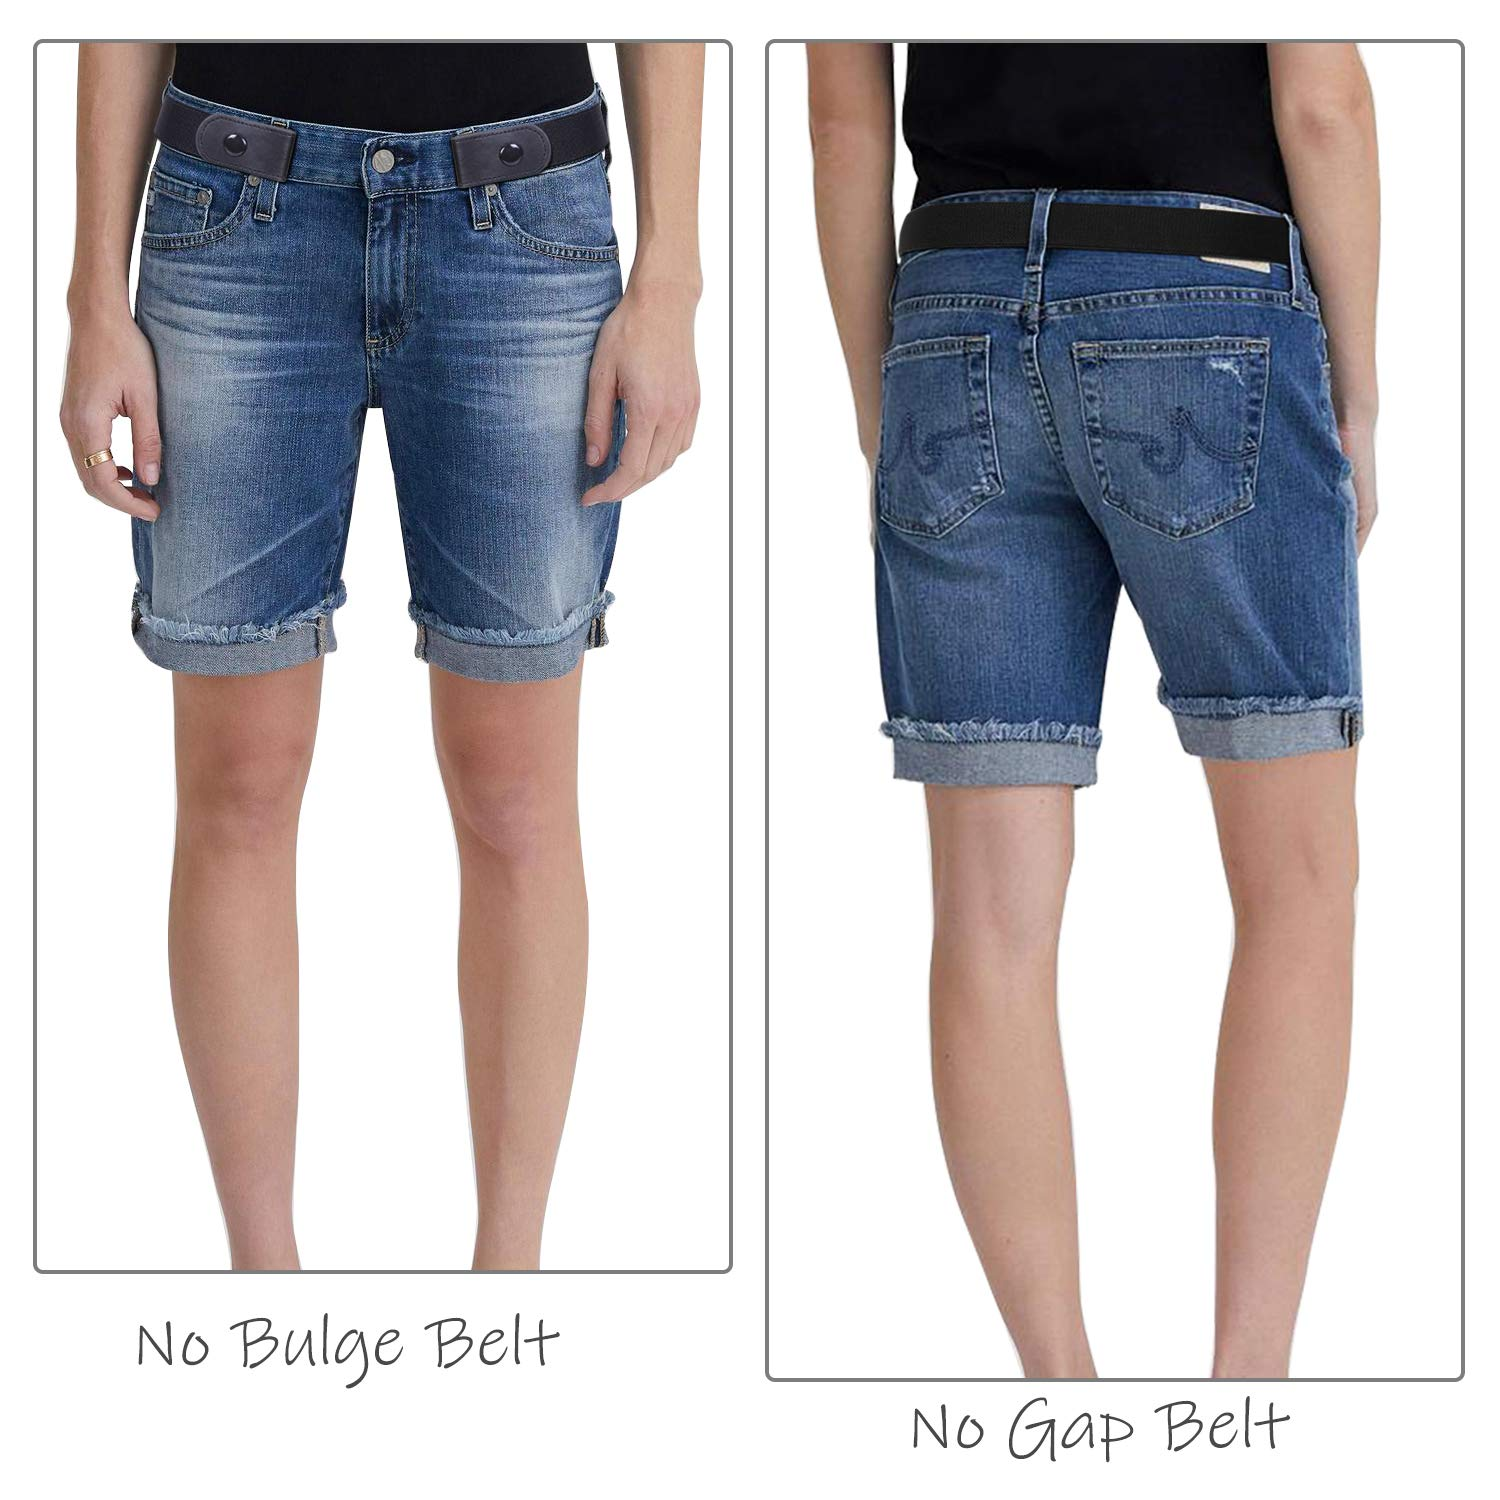 Buckle-Free Women No Buckle Invisible Stretch Belt For Jeans, Black, Large(Pants Size 34-48 Inches)